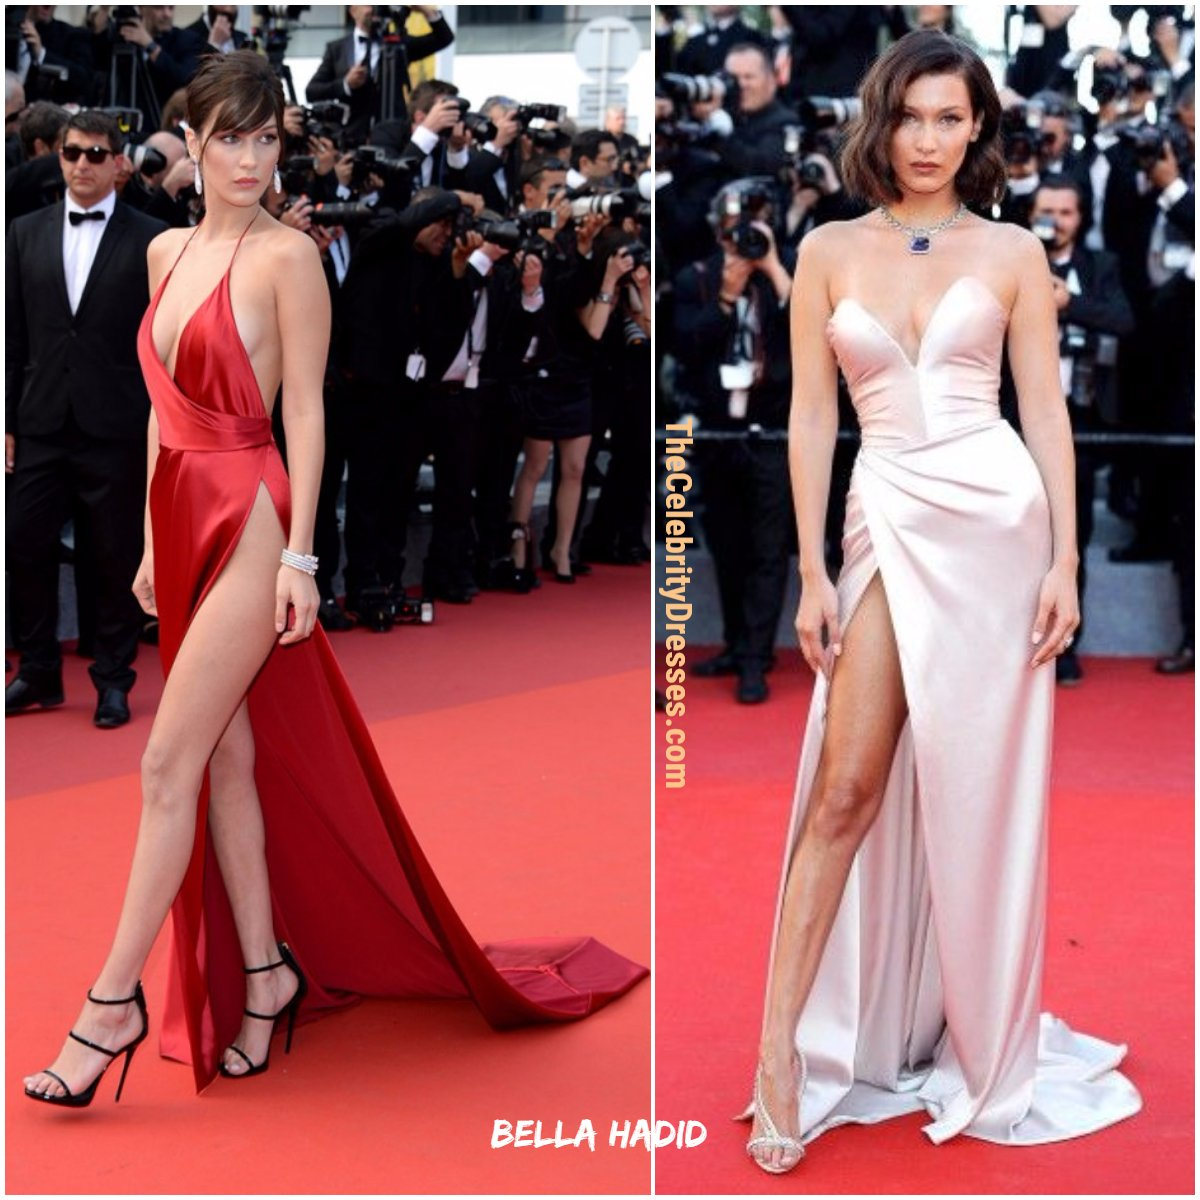 #Bella #Hadid style~~ tell us which one you like more and why? shop link -&gt;  http:// bit.ly/2wOuudW  &nbsp;  <br>http://pic.twitter.com/etI9rCC7g7